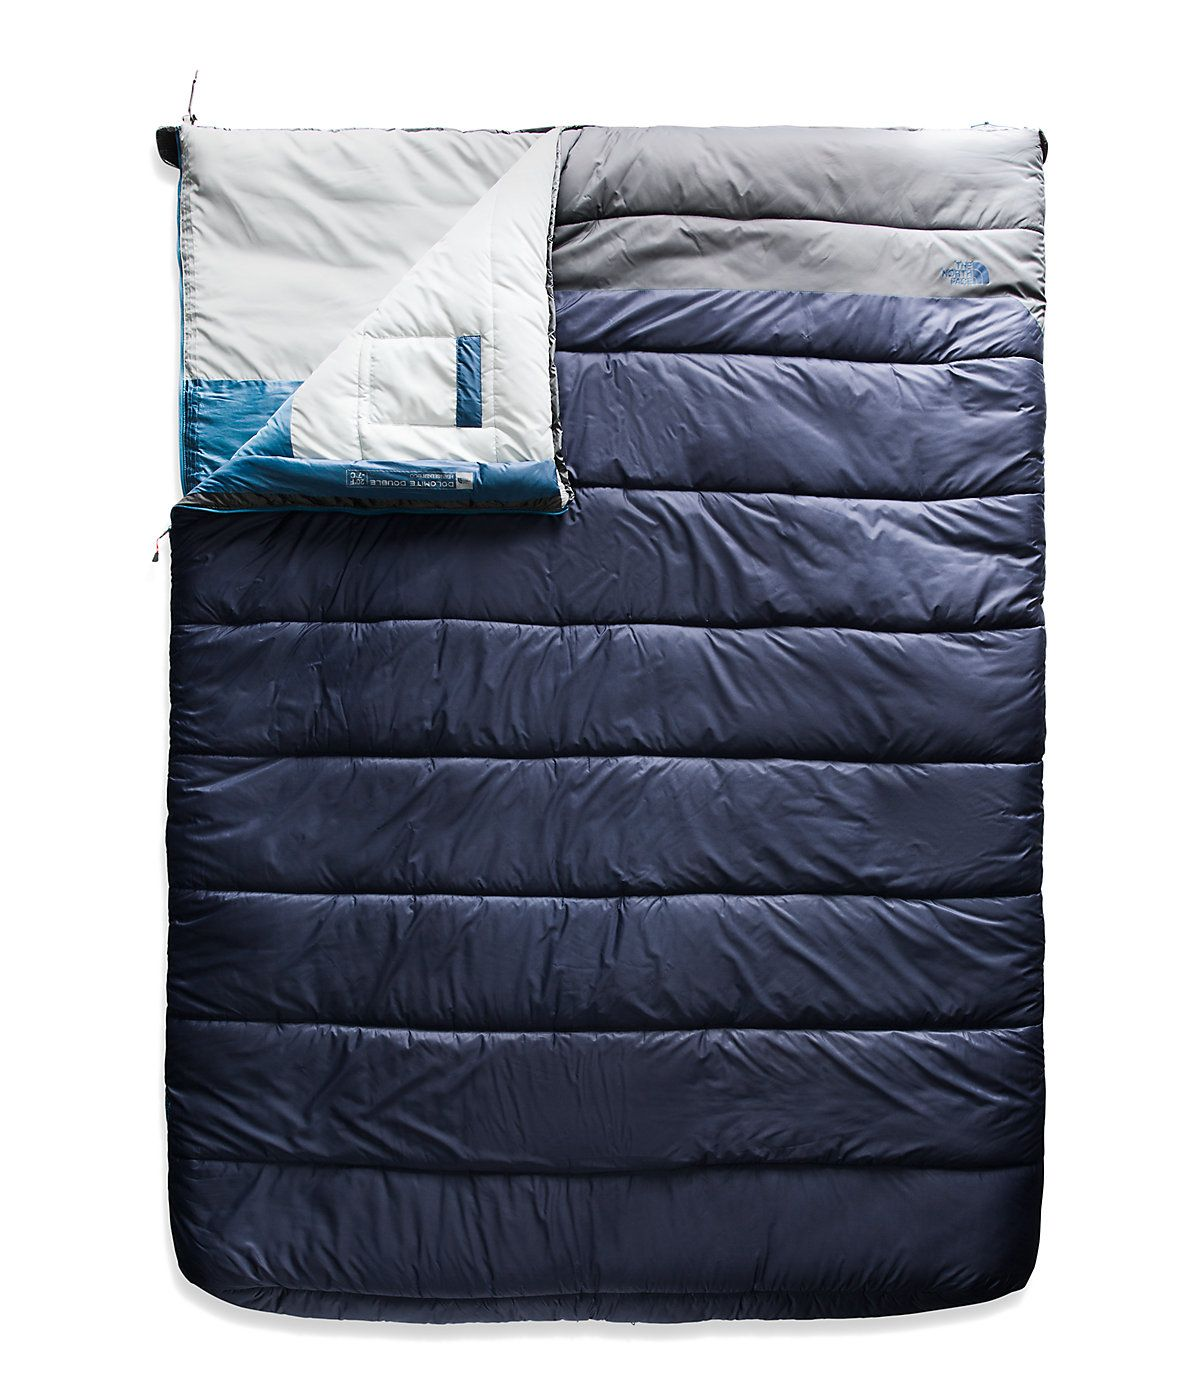 c0d6c3da8 Dolomite double 20f/-7c in 2019 | Products | The north face, Bags ...